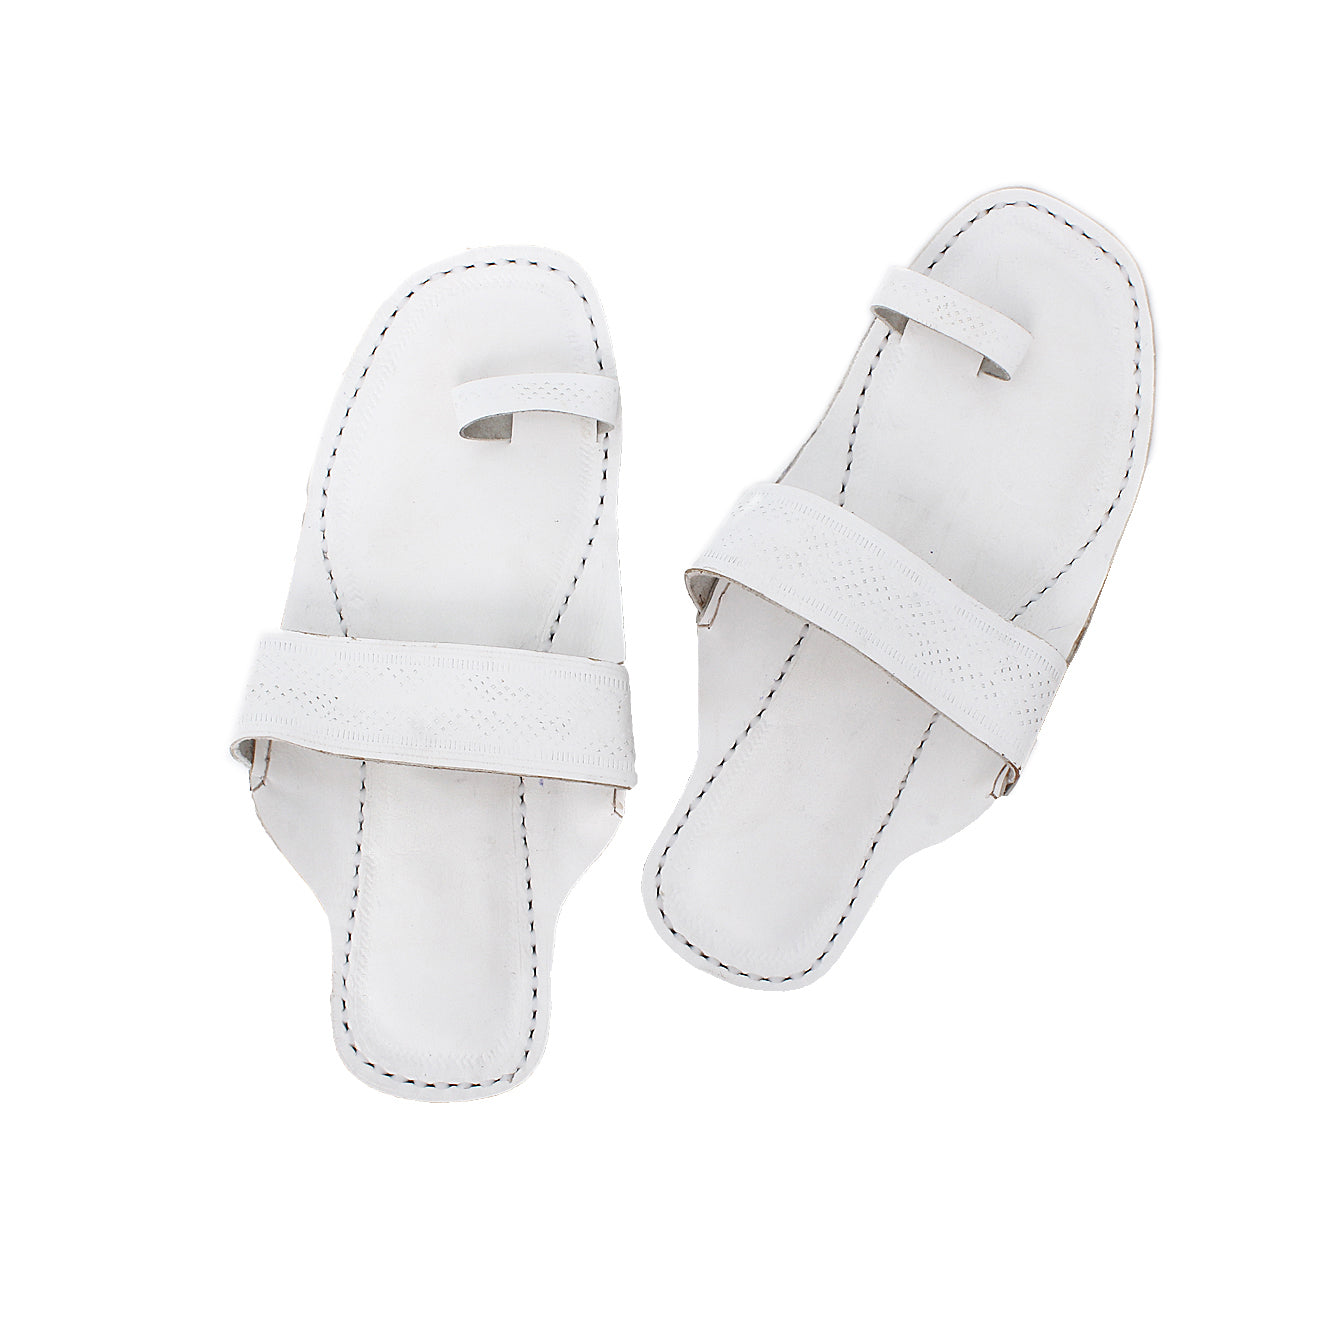 Premium Quality Toe Style White Indian Ethnic Sandal for Men KRKA-P-M-170